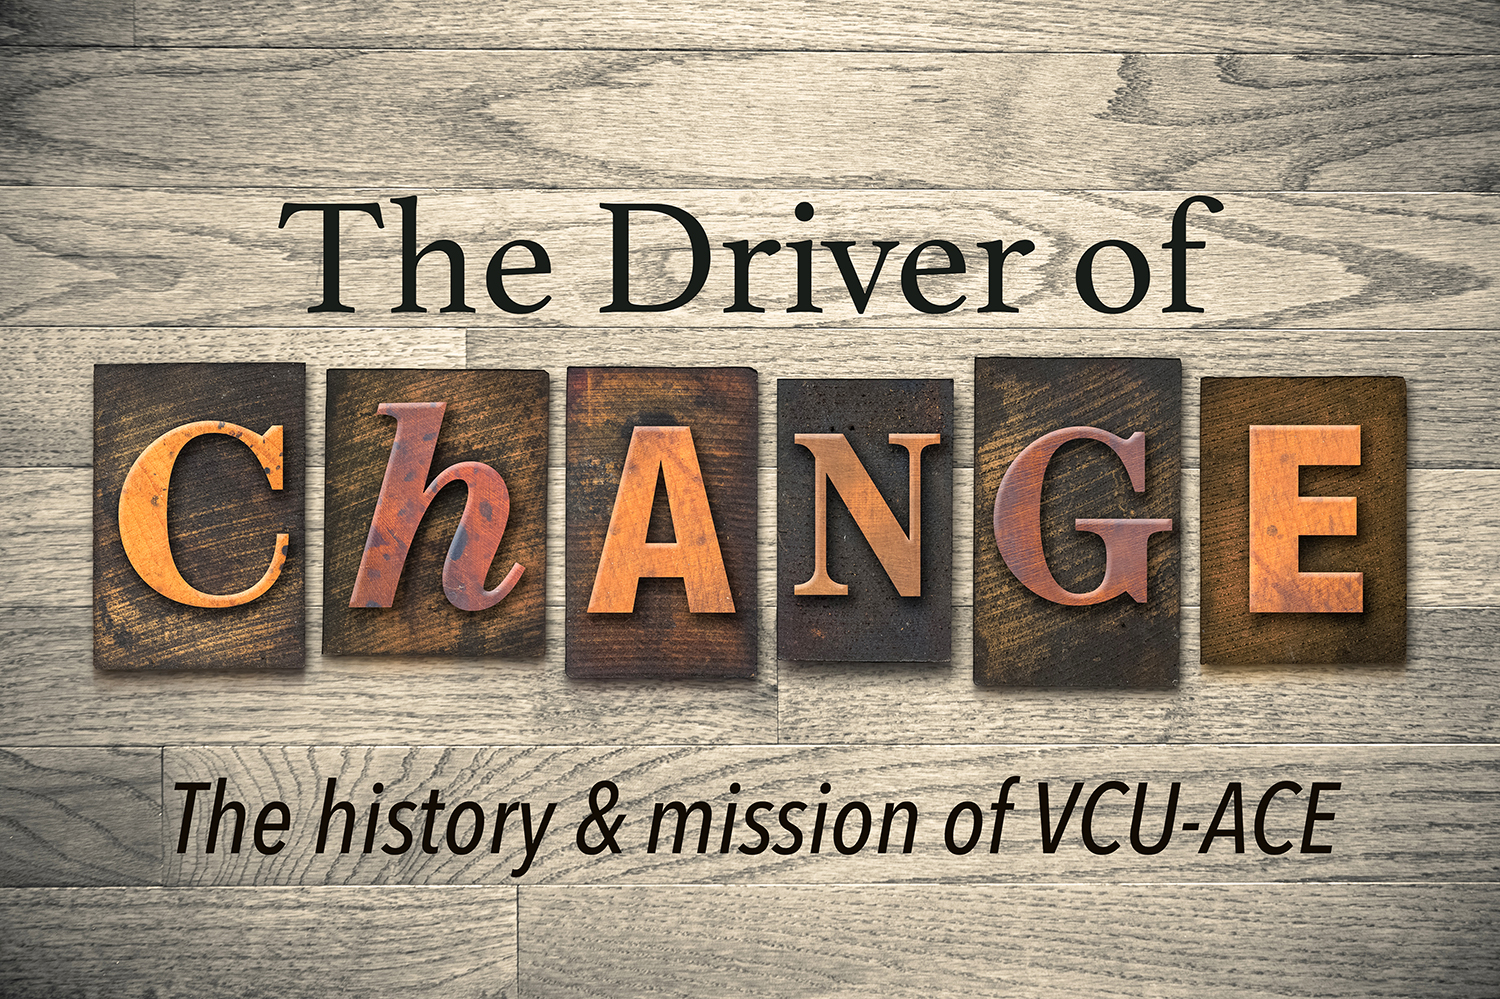 The Driver of Change.The history and mission of VCU-ACE.